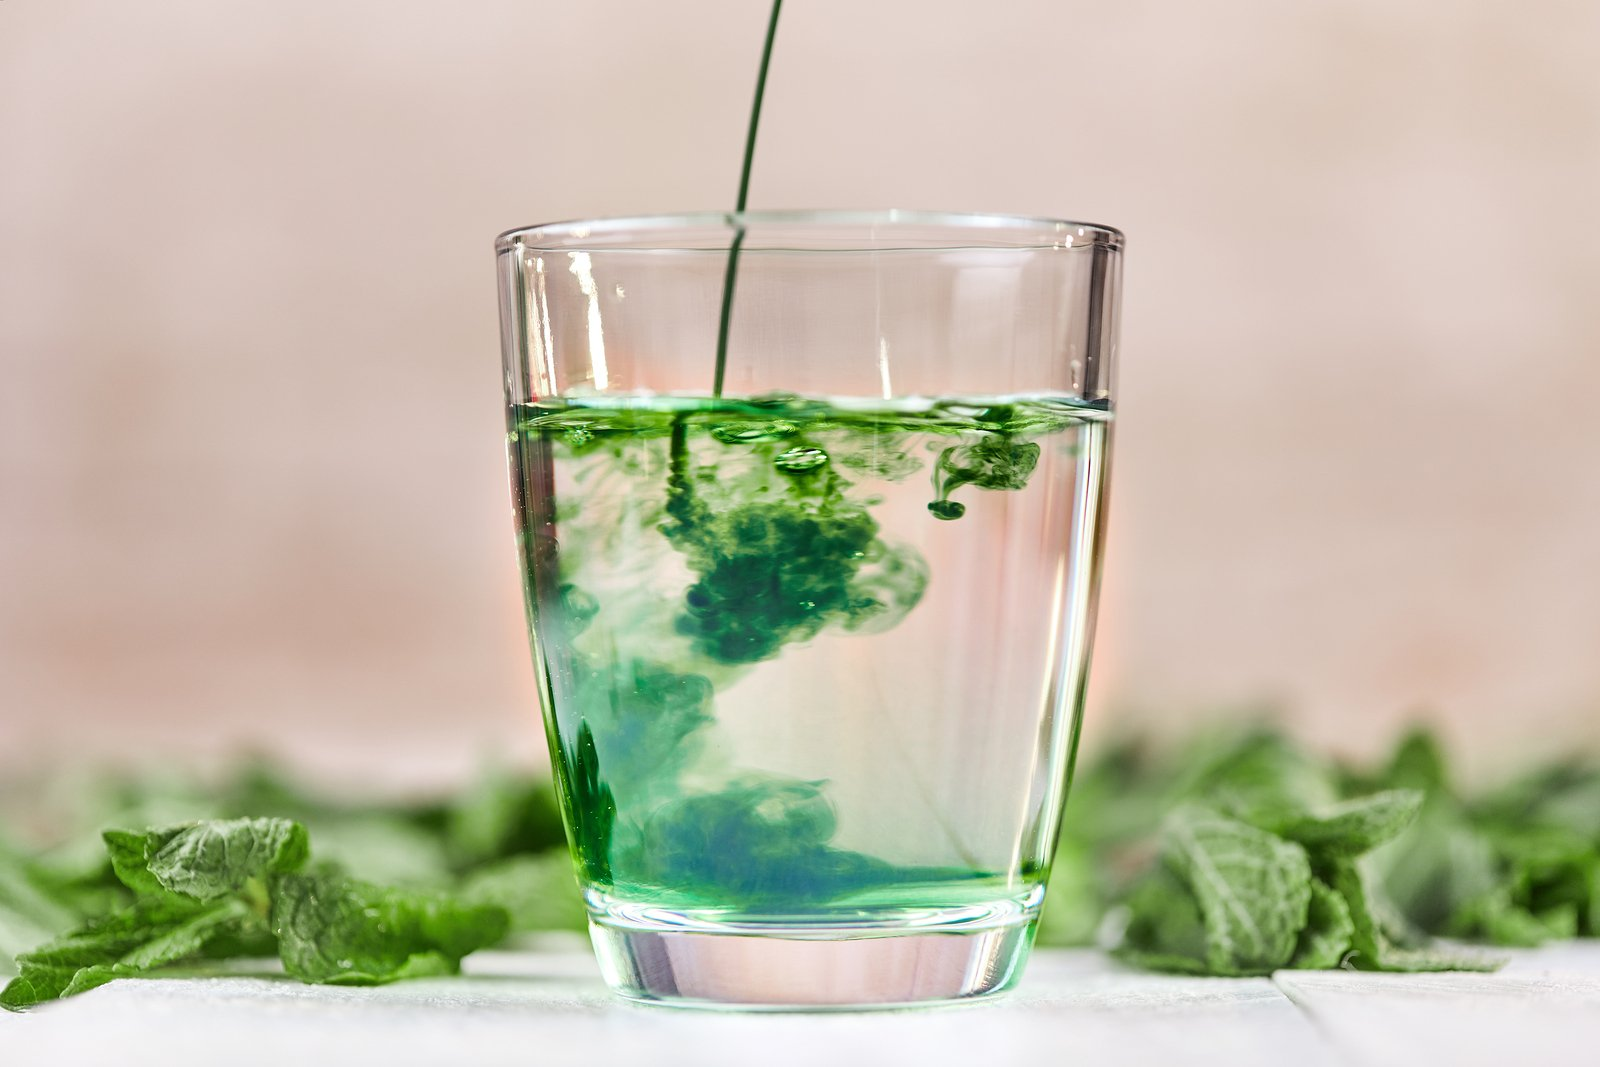 Dissolving Liquid Chlorophyll In Glass Of Water